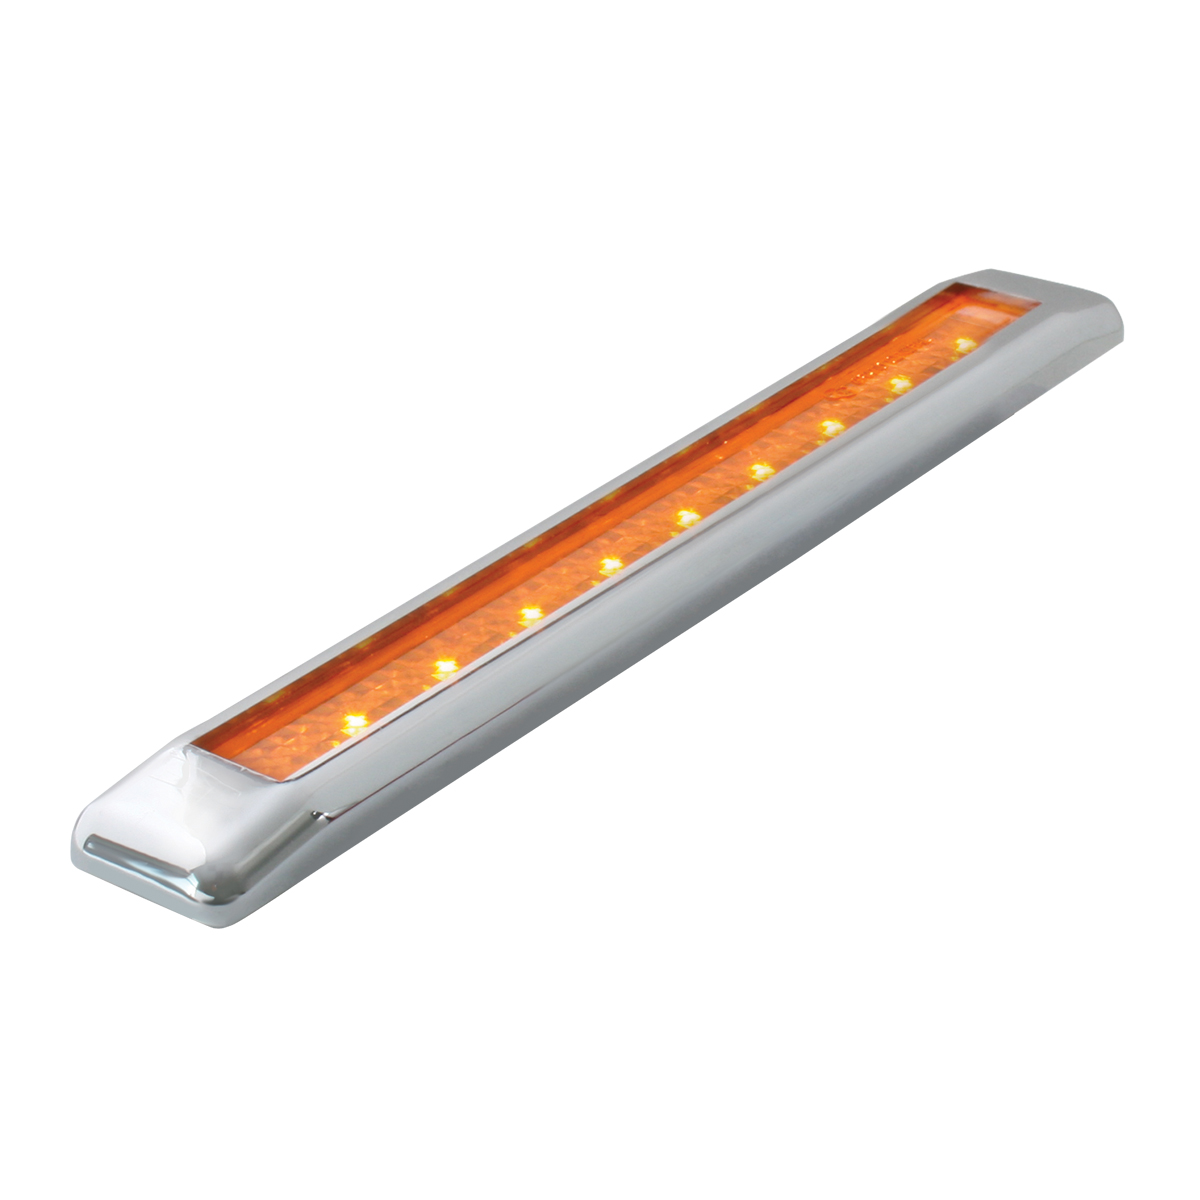 "76060 8.25"" Ultra Thin LED Marker Light Bar in Amber/Amber"